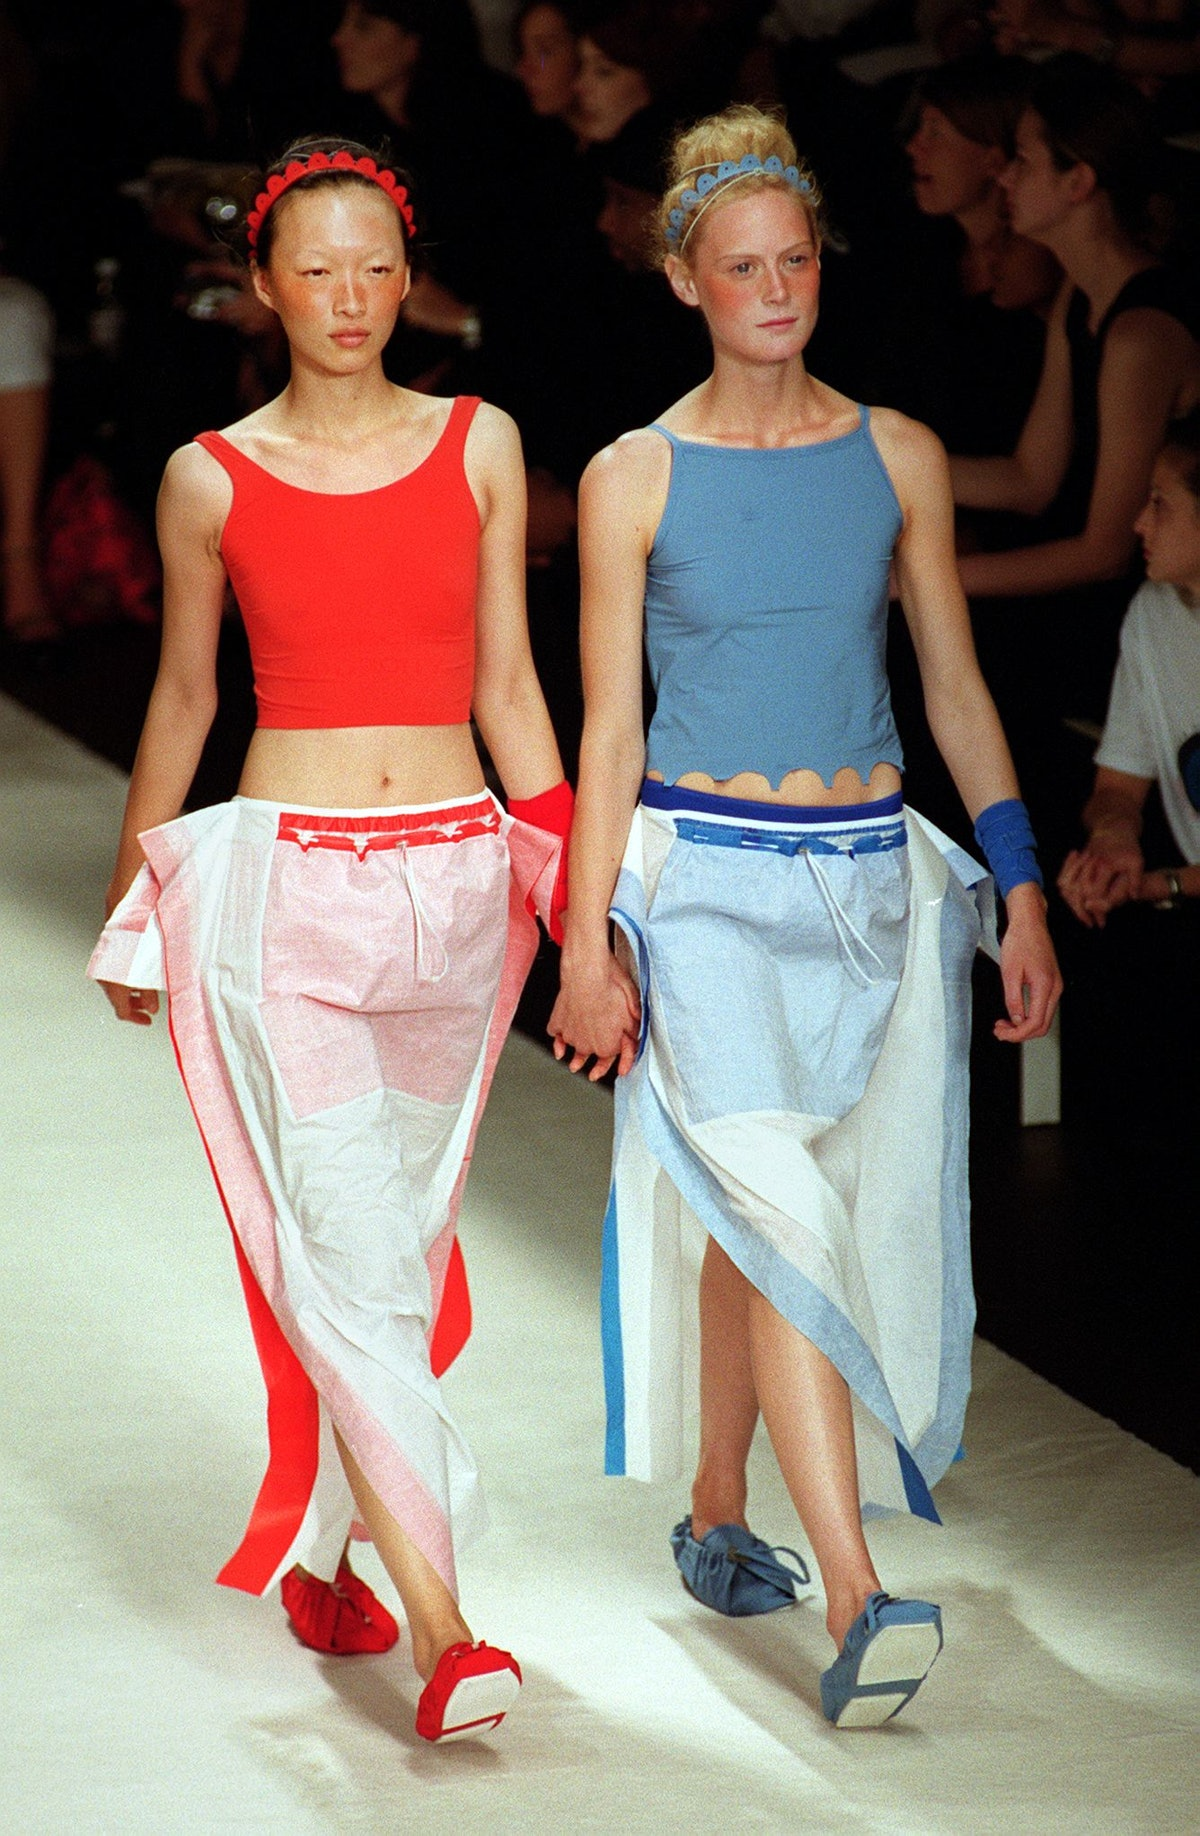 Two models wear red and blue tank tops over white